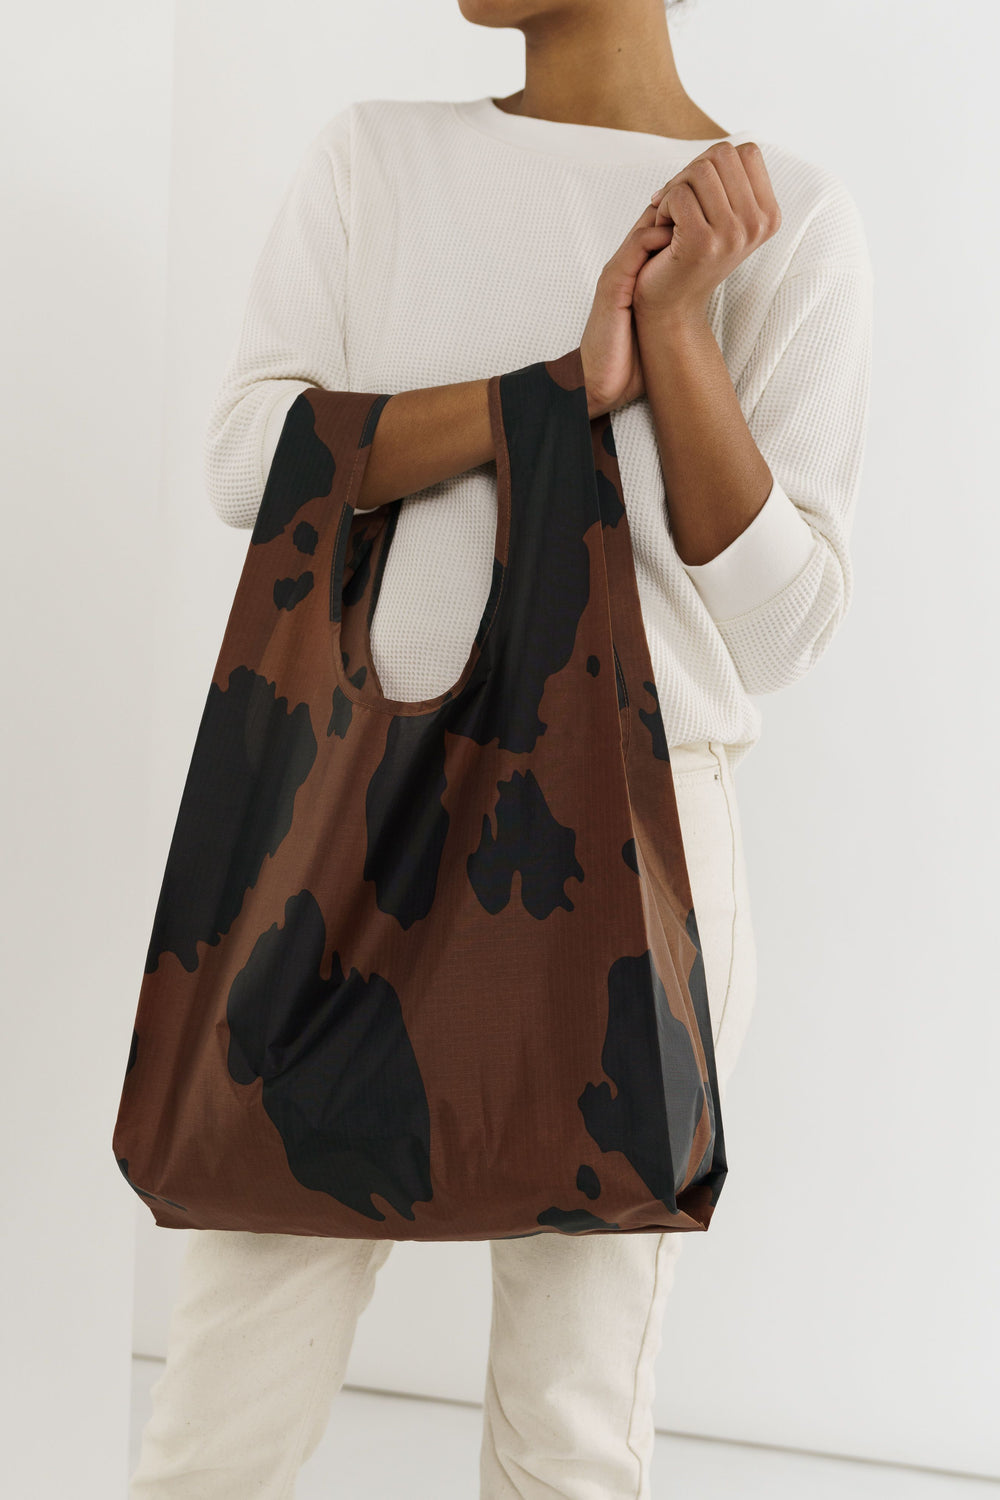 Baggu Reusable Tote- Cow Black and Brown - Whimsy & Row